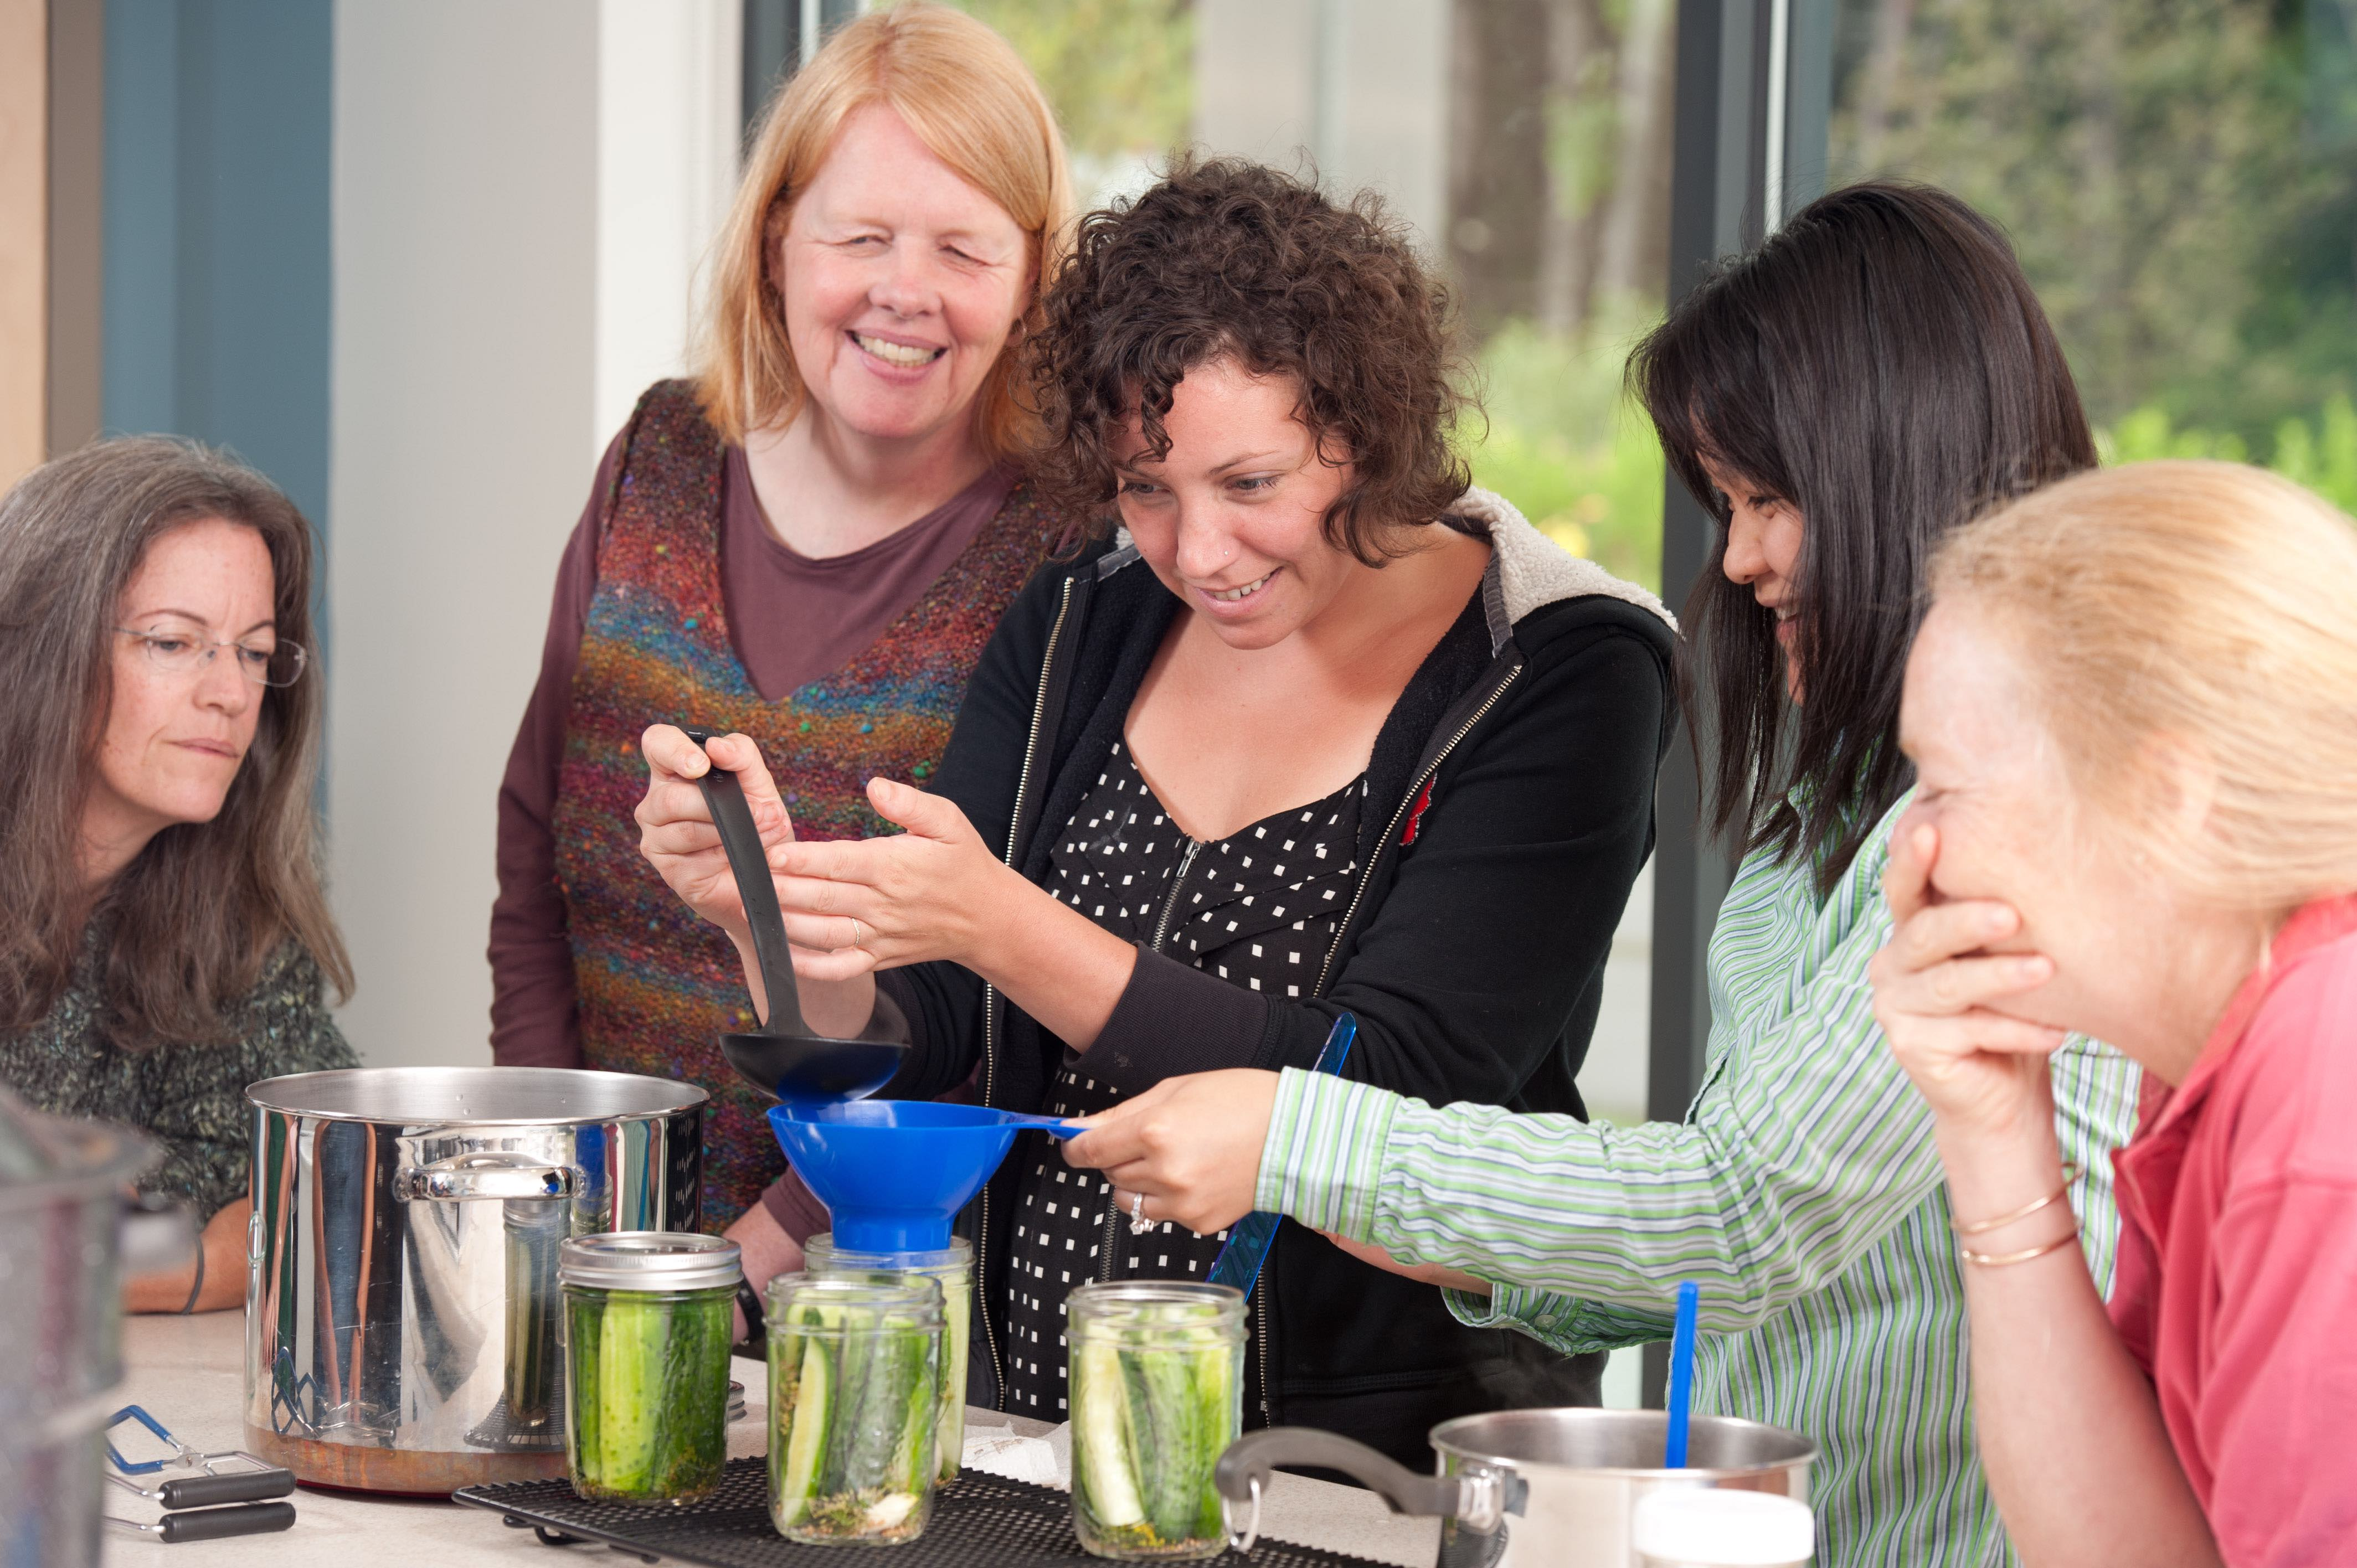 image of 5 women making pickles